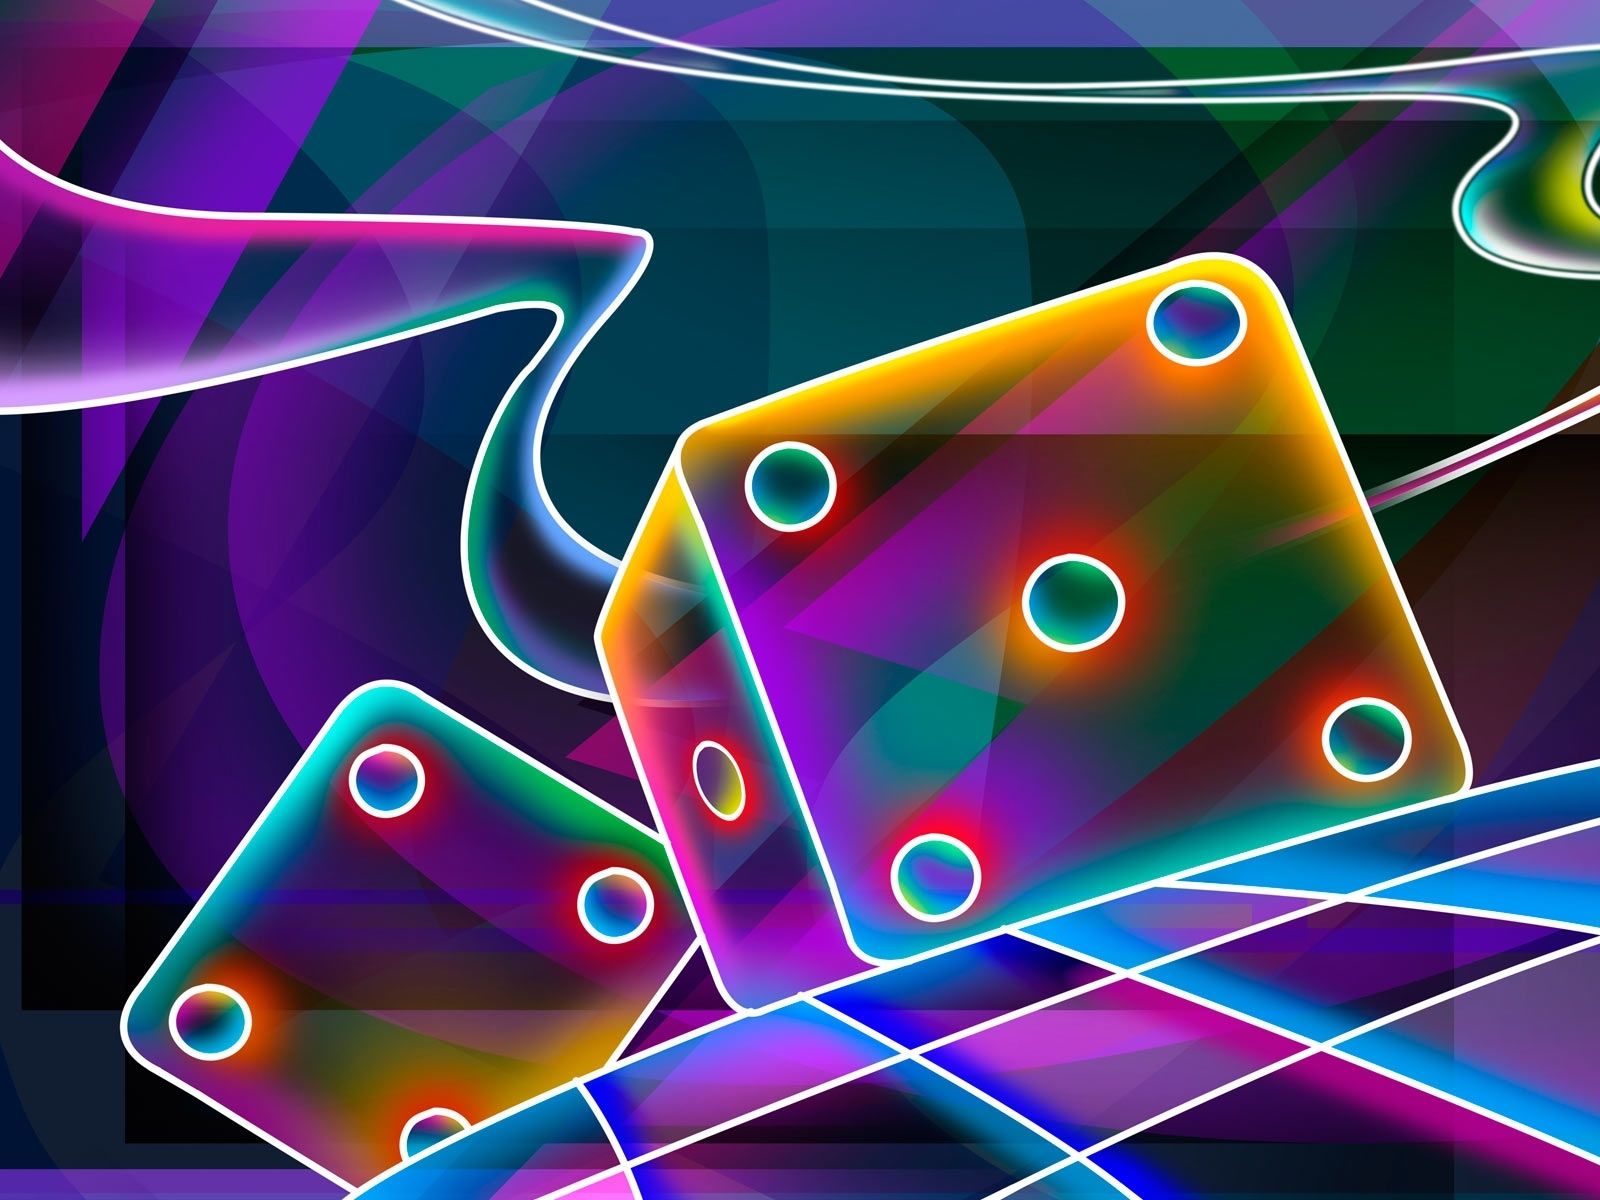 3d hd | 3d abstract 3d wallpapers hd 3d abstract 3d wallpapers hd